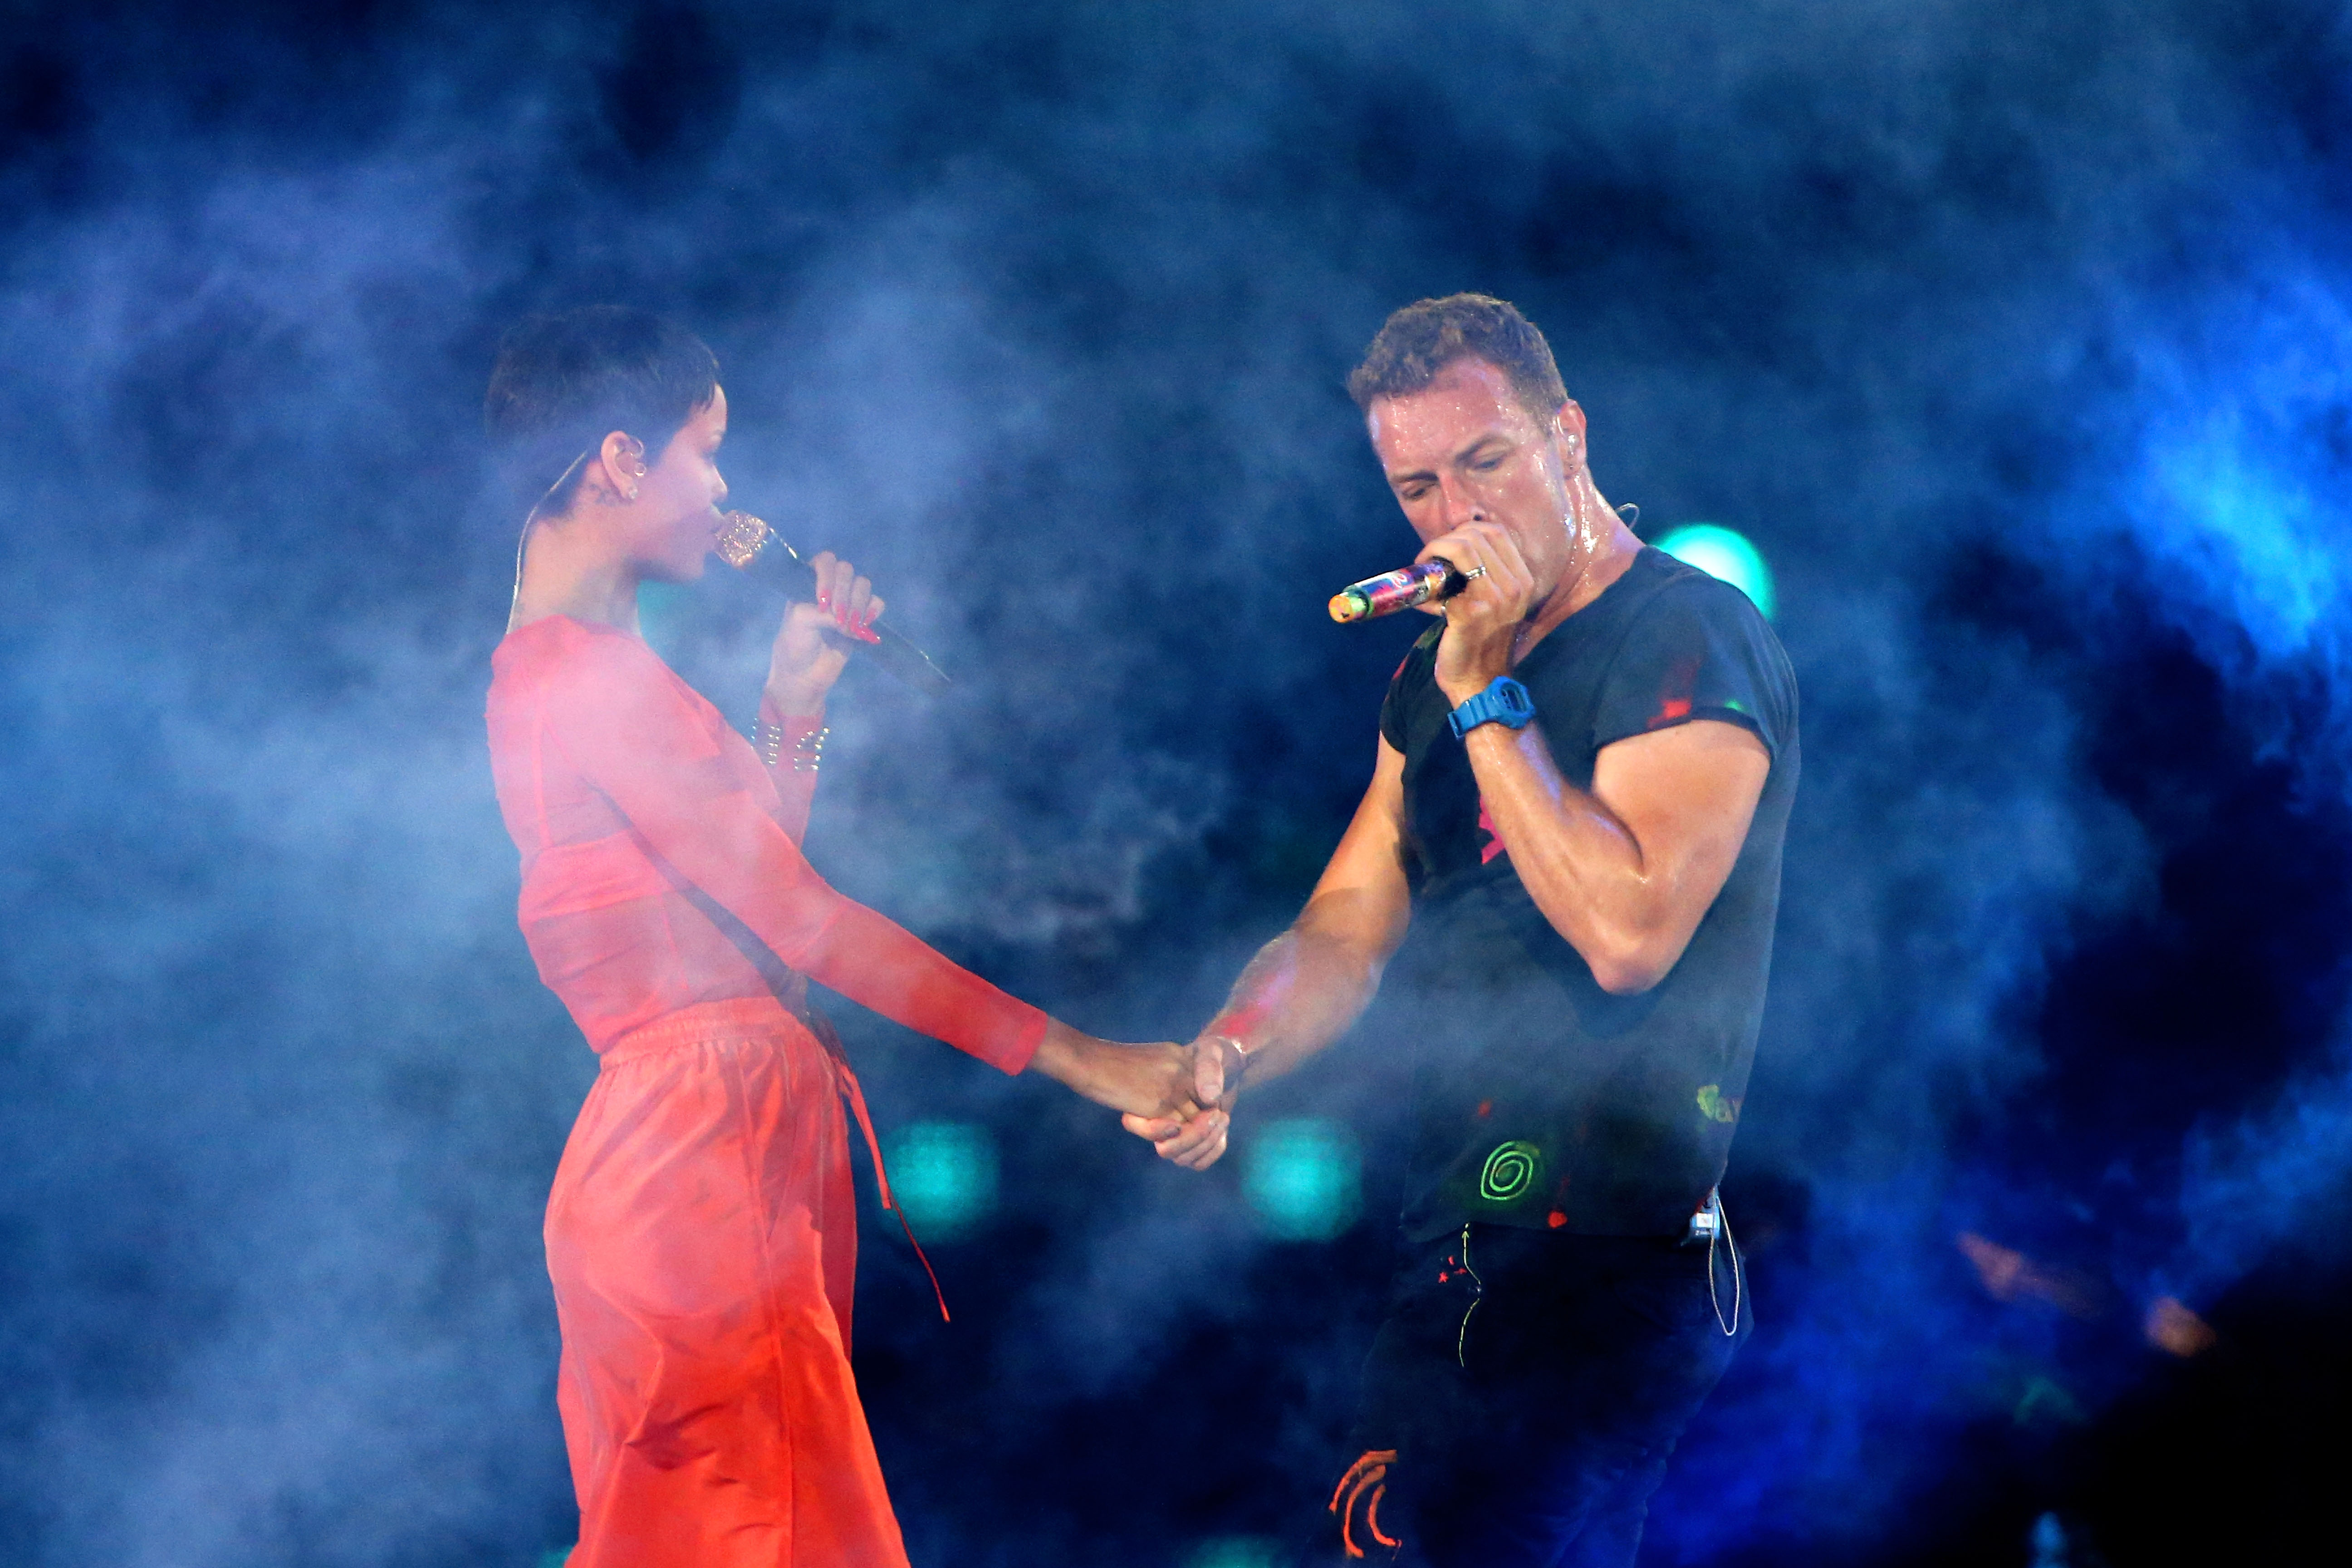 LONDON, ENGLAND - SEPTEMBER 09:  Rihanna performs with Chris Martin of Coldplay during the closing ceremony on day 11 of the